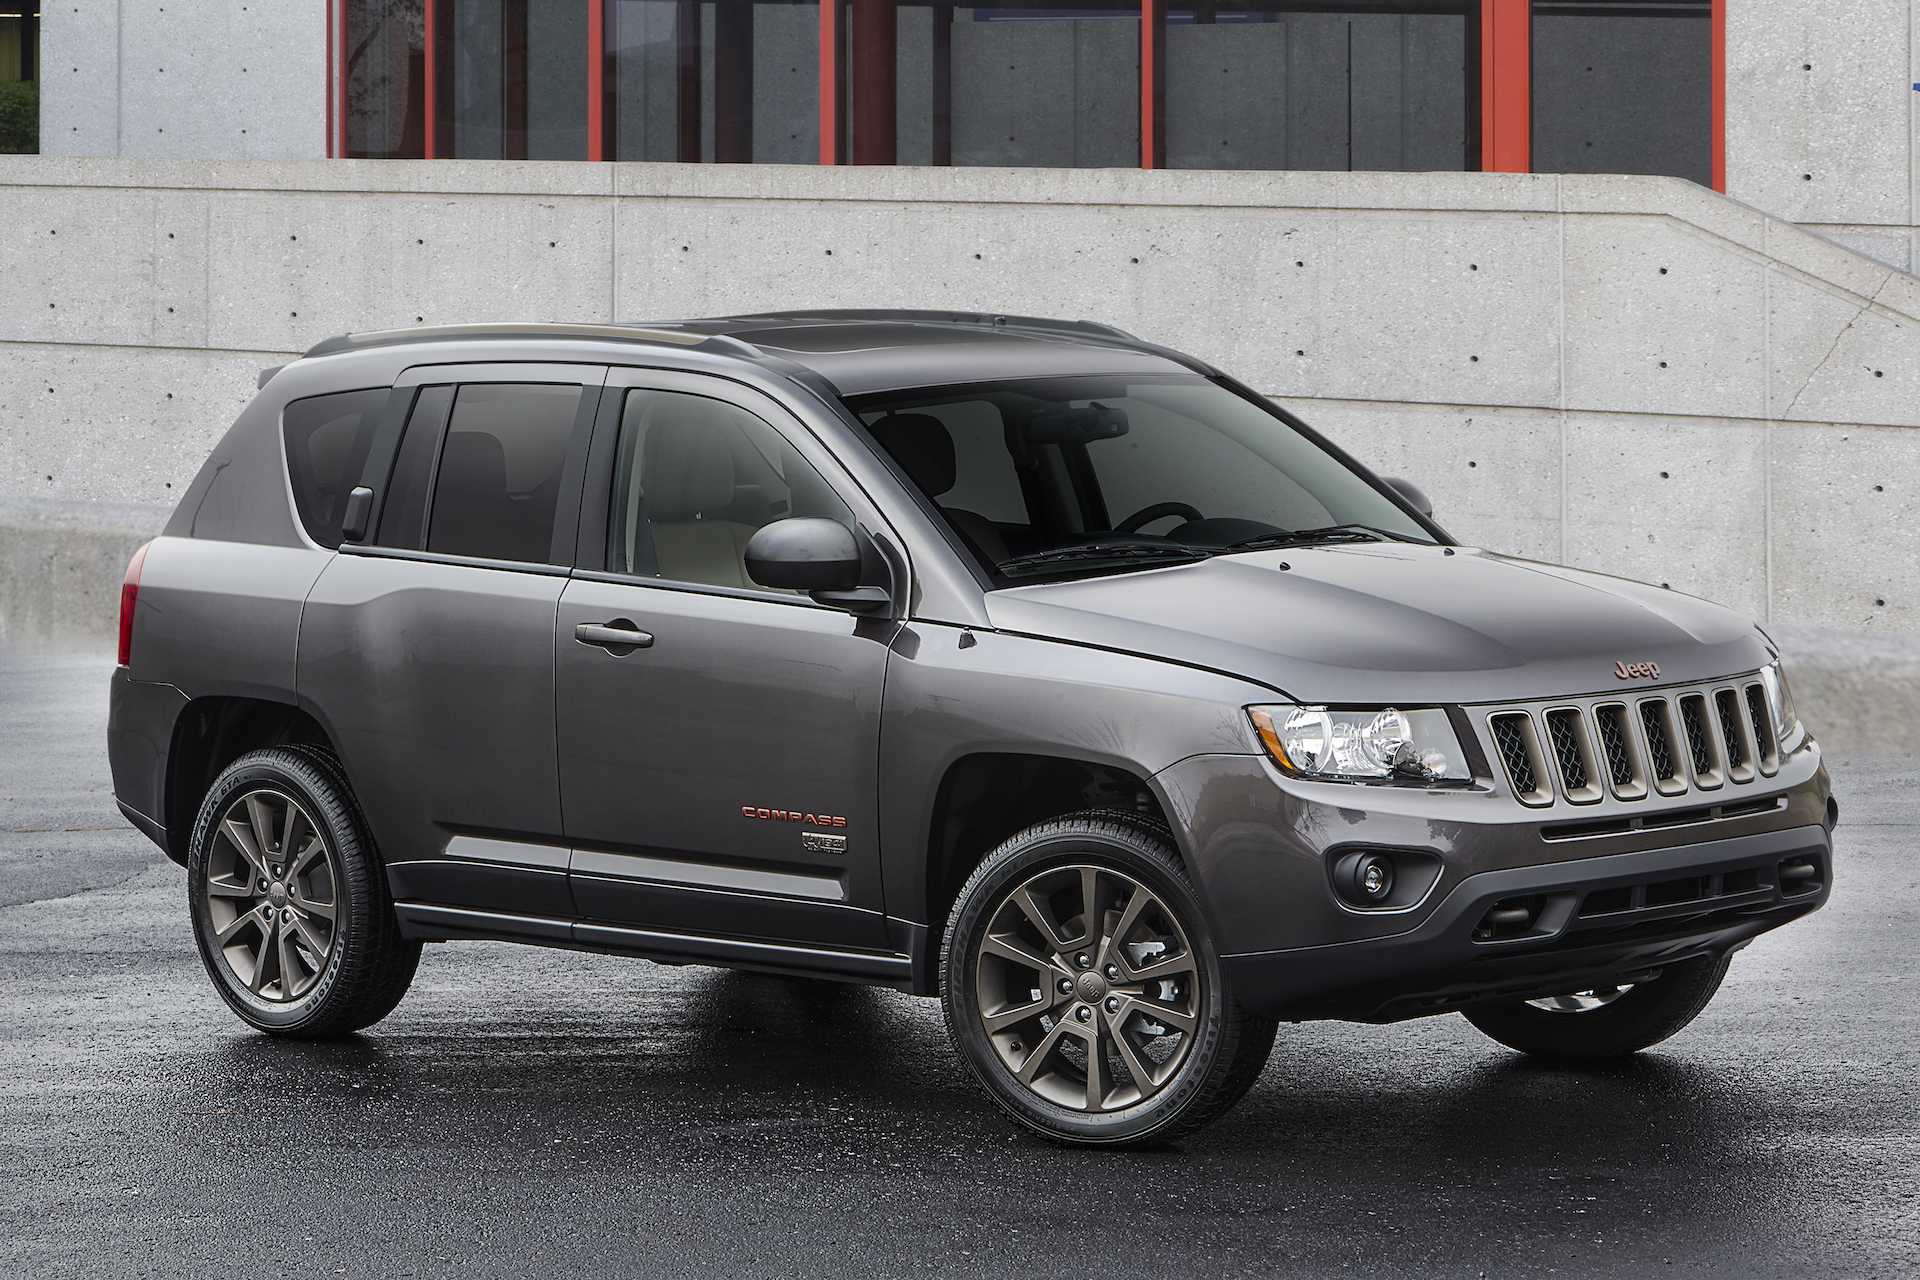 Used Mercedes Benz Dallas >> 2017 Jeep Compass Review, Ratings, Specs, Prices, and Photos - The Car Connection